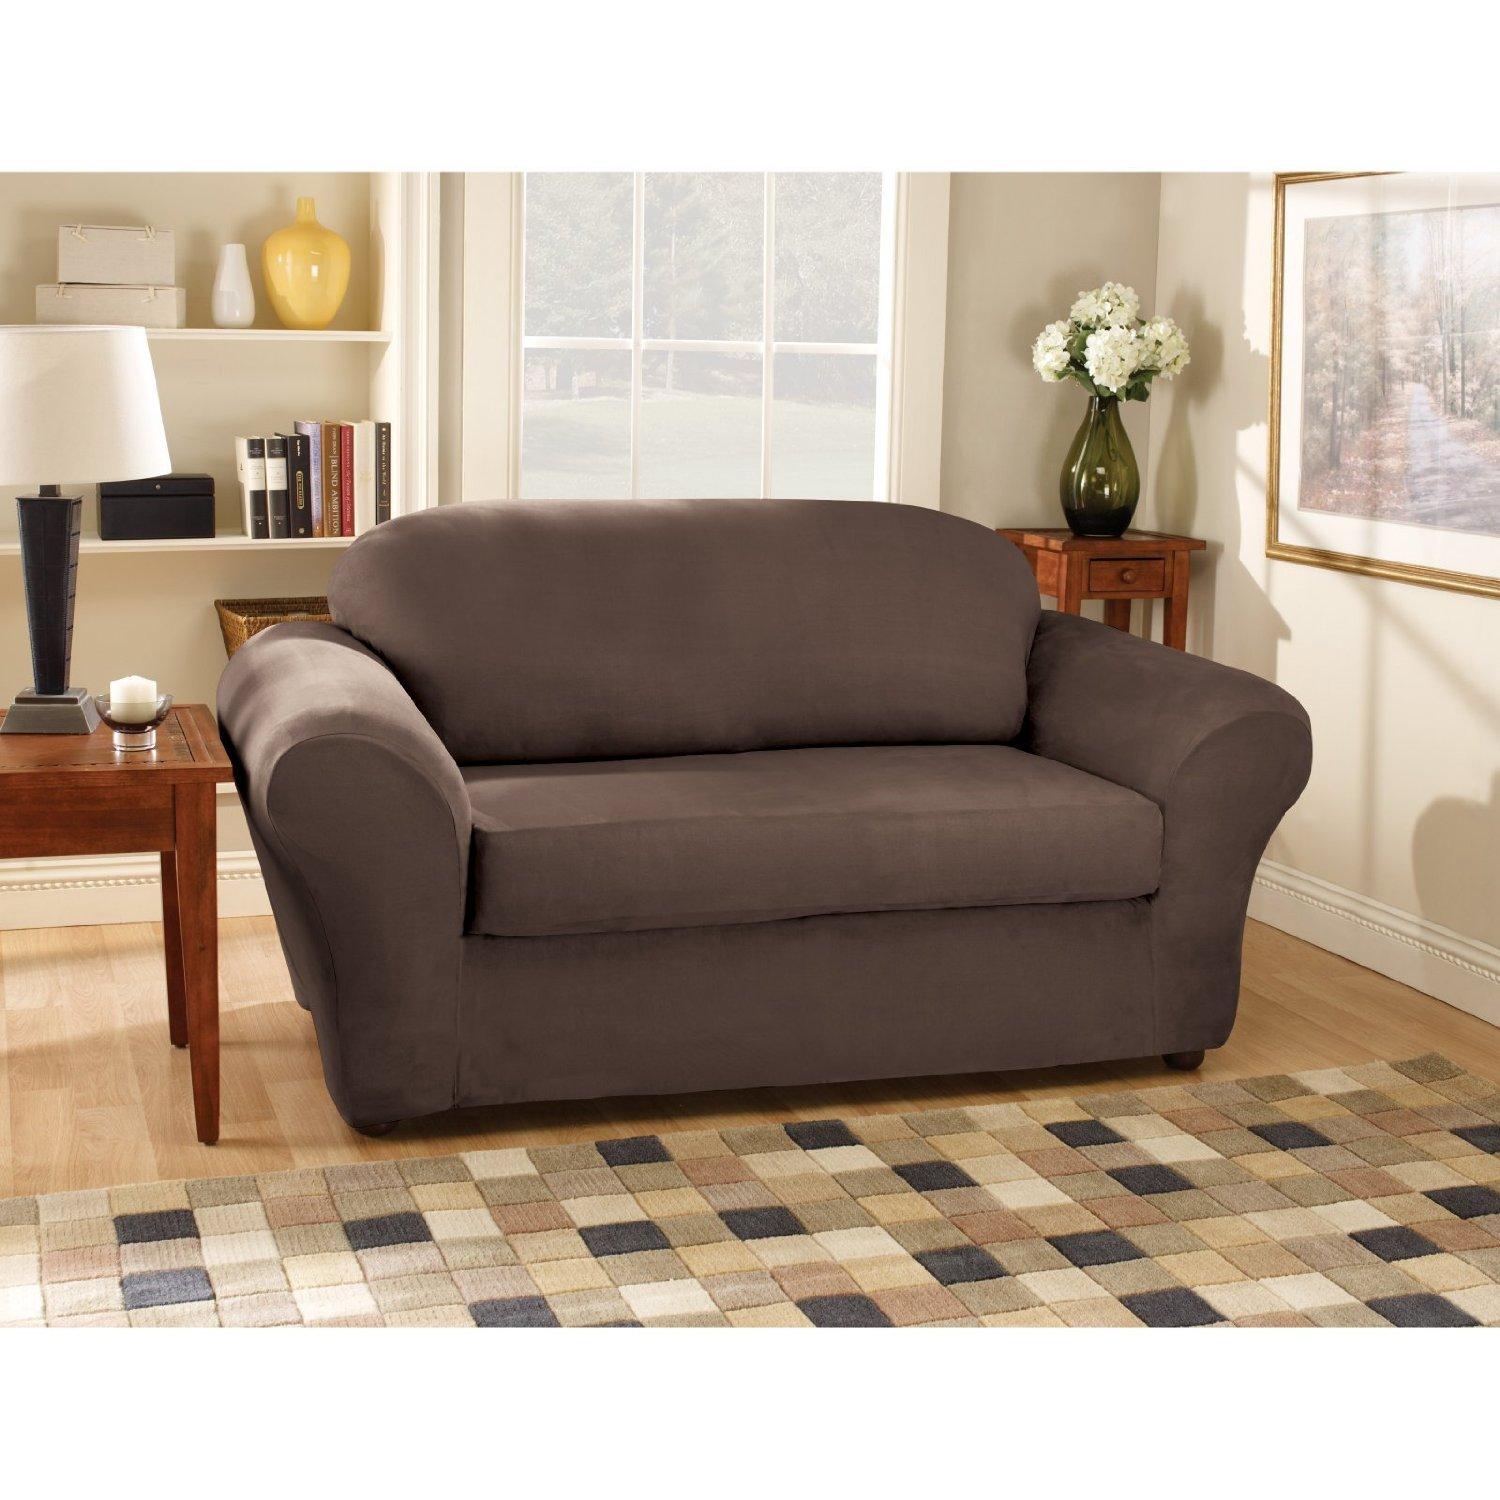 Where To Buy Couch Covers Cheap And Stylish amp Sofa